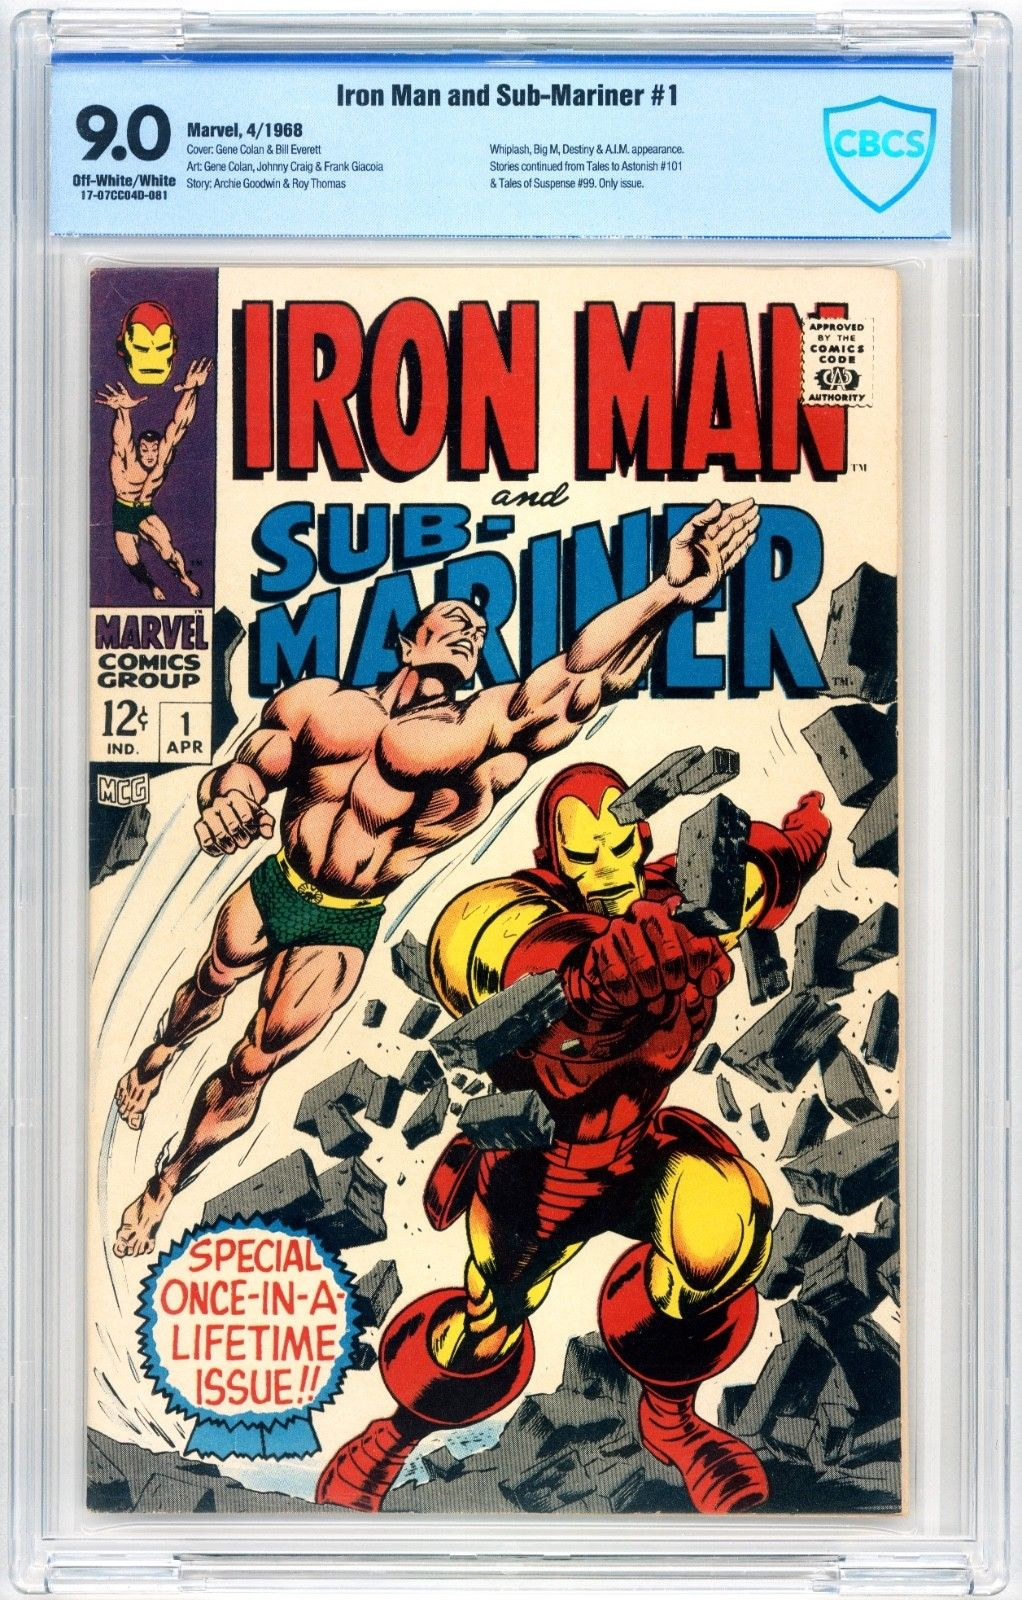 Iron Man and Sub-Mariner #1 CBCS 9.0 Cont. TTA 101 & TOS 99 1968